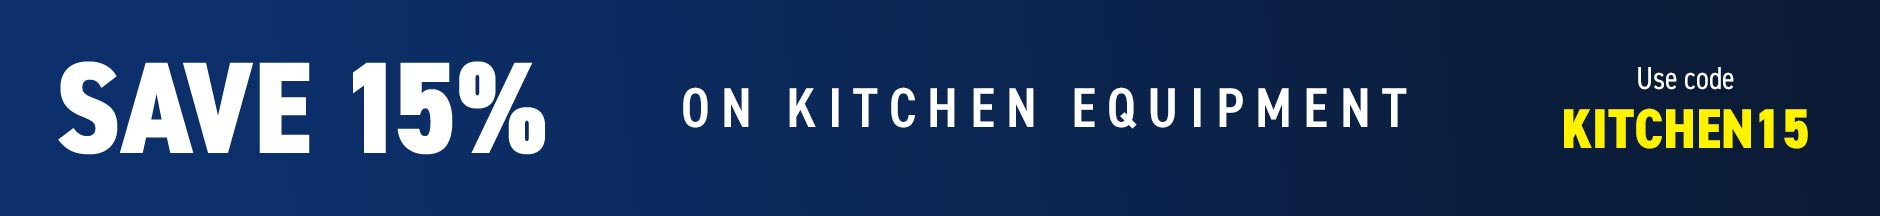 Save 15% on All Kitchen Equipment